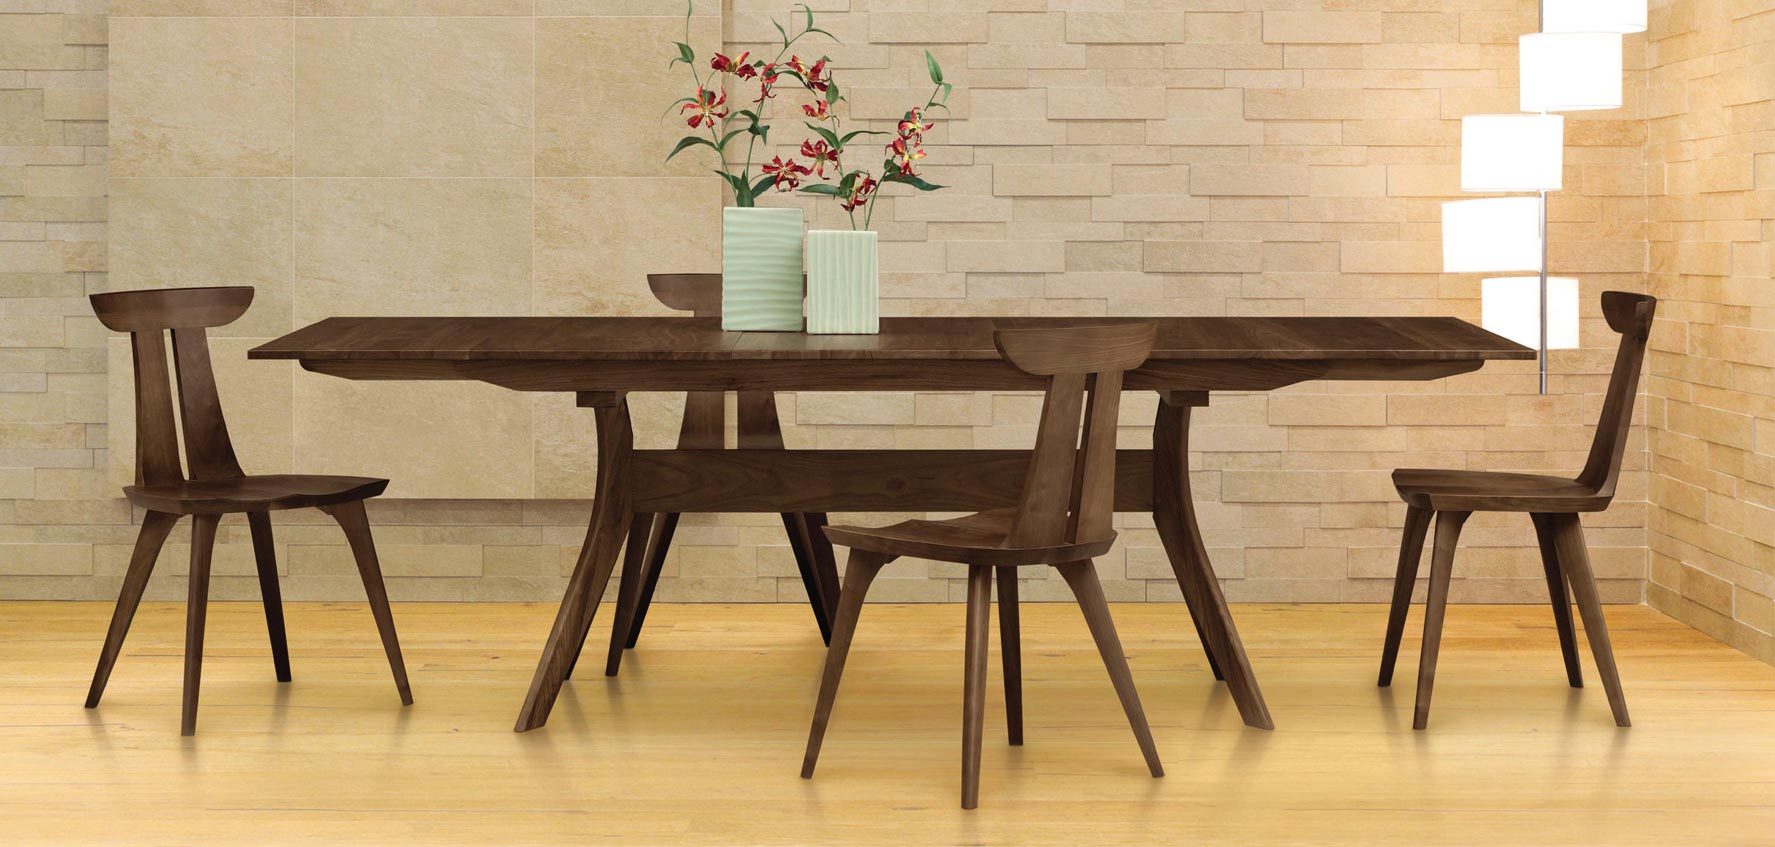 Audrey Furniture by Copeland